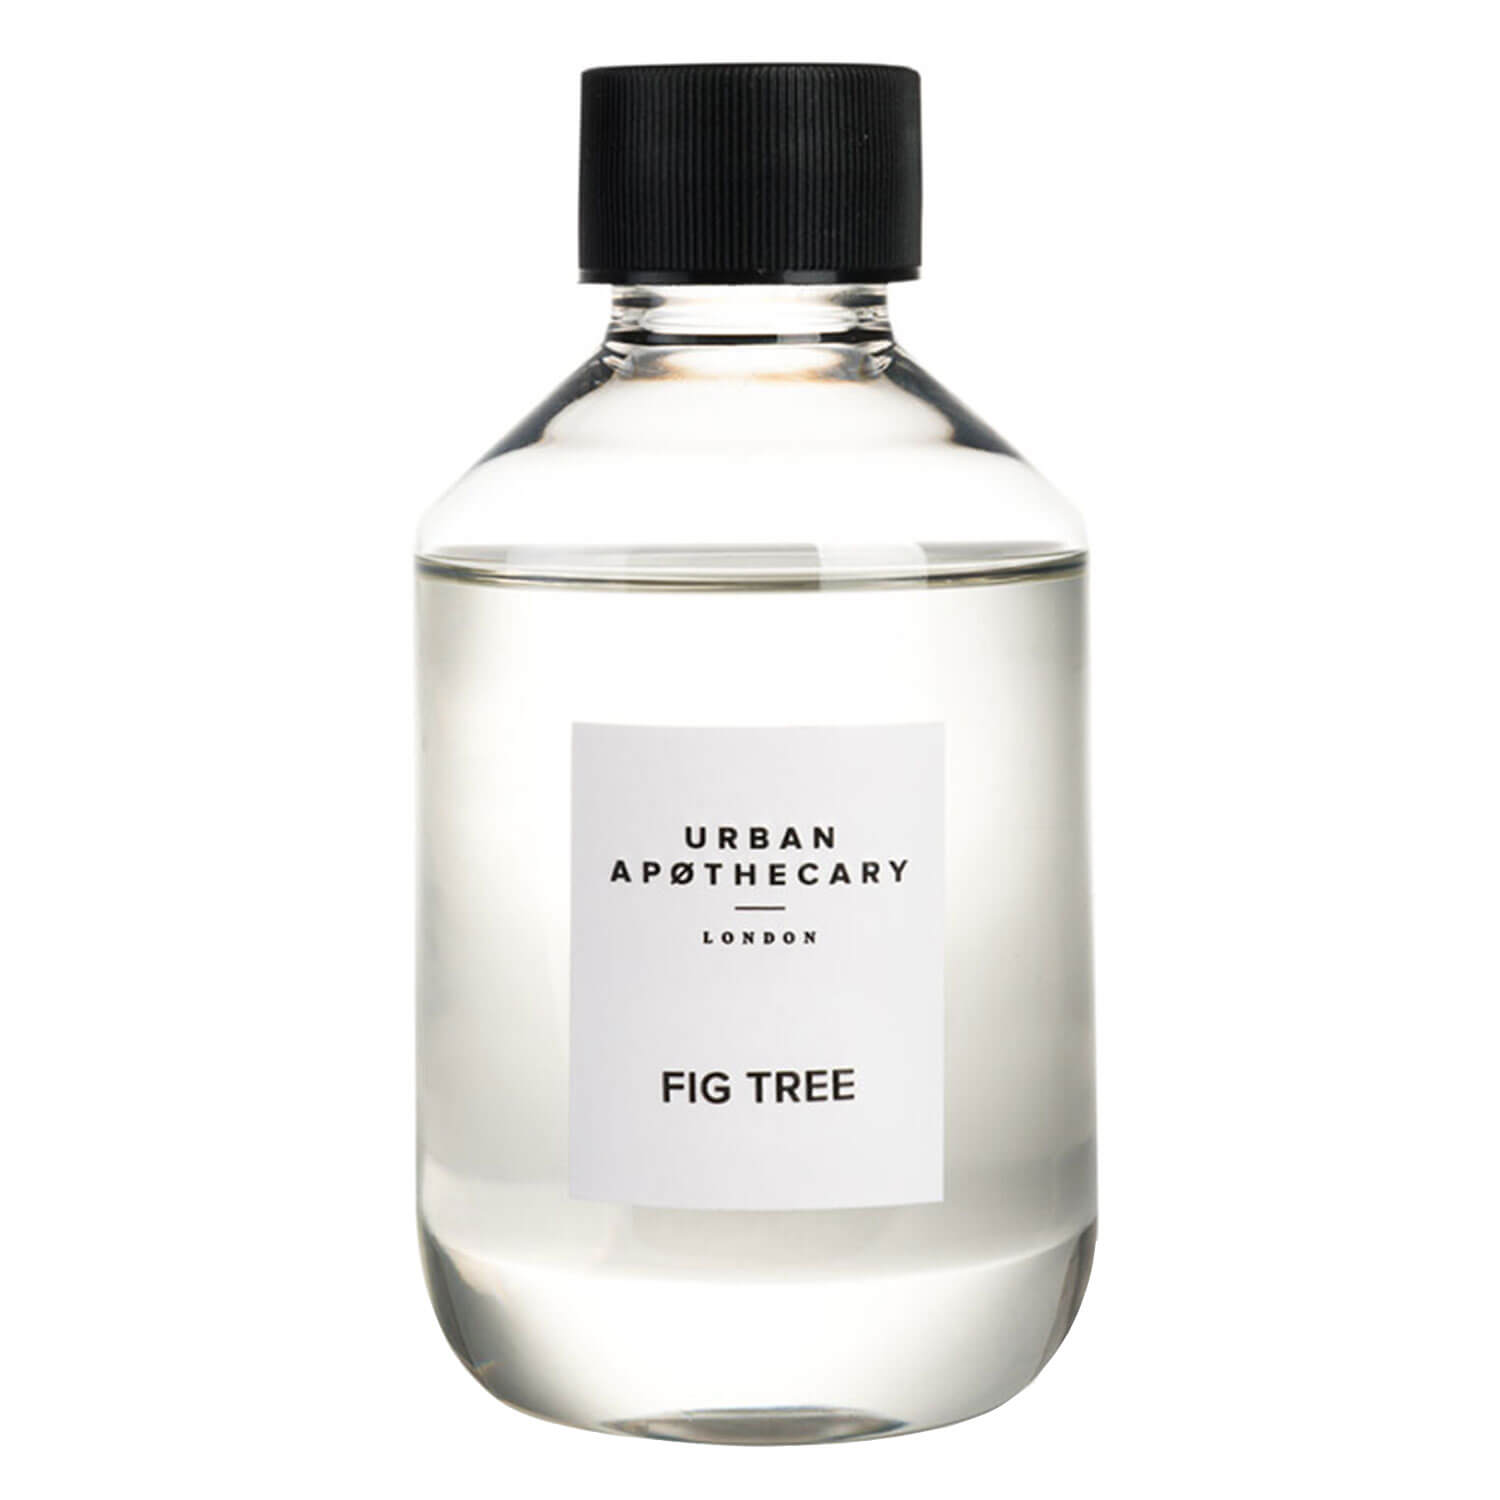 Urban Apothecary - Diffuser Refill Fig Tree